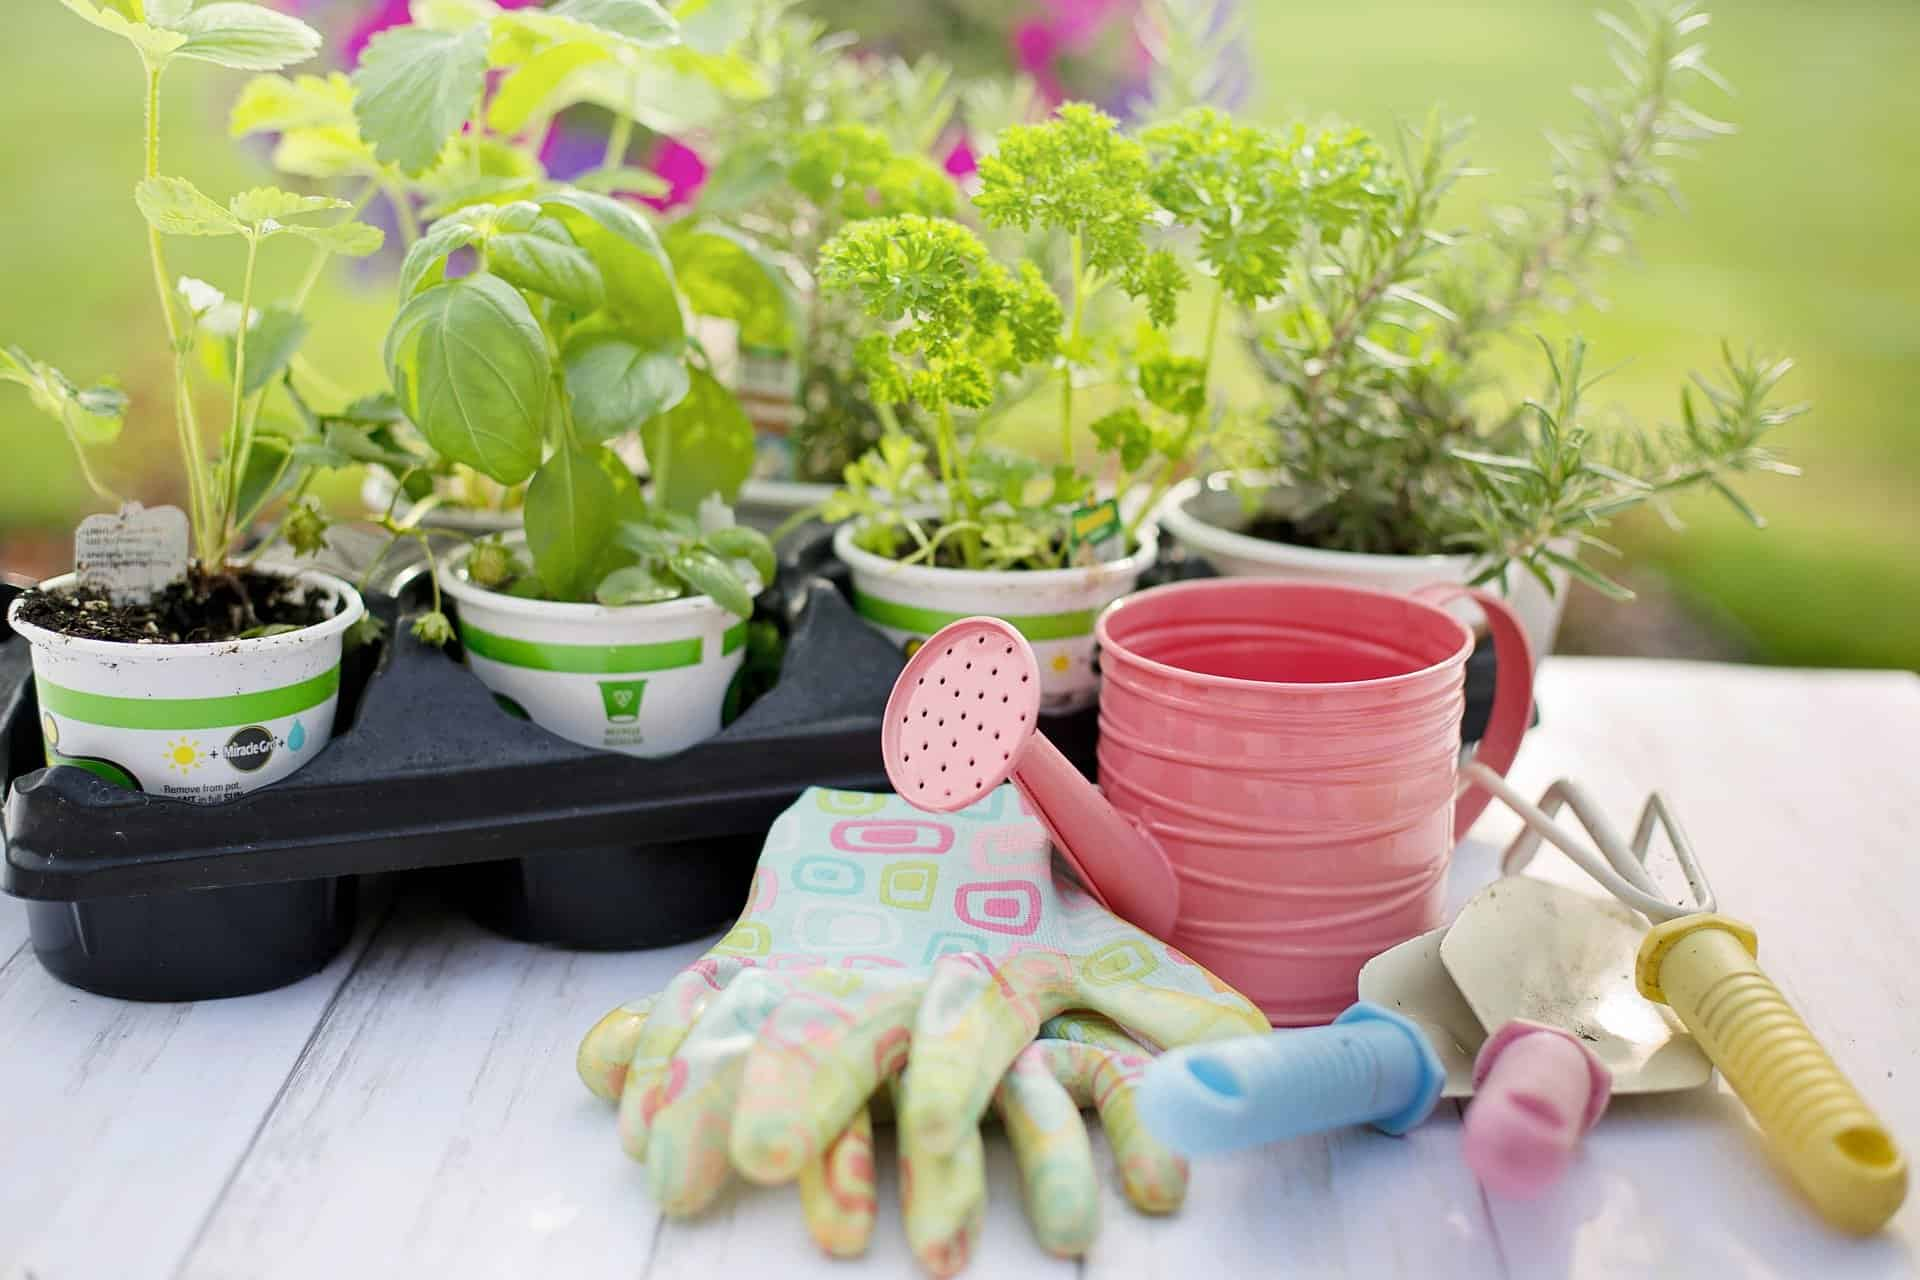 Pruning Tool Kit For Gardening